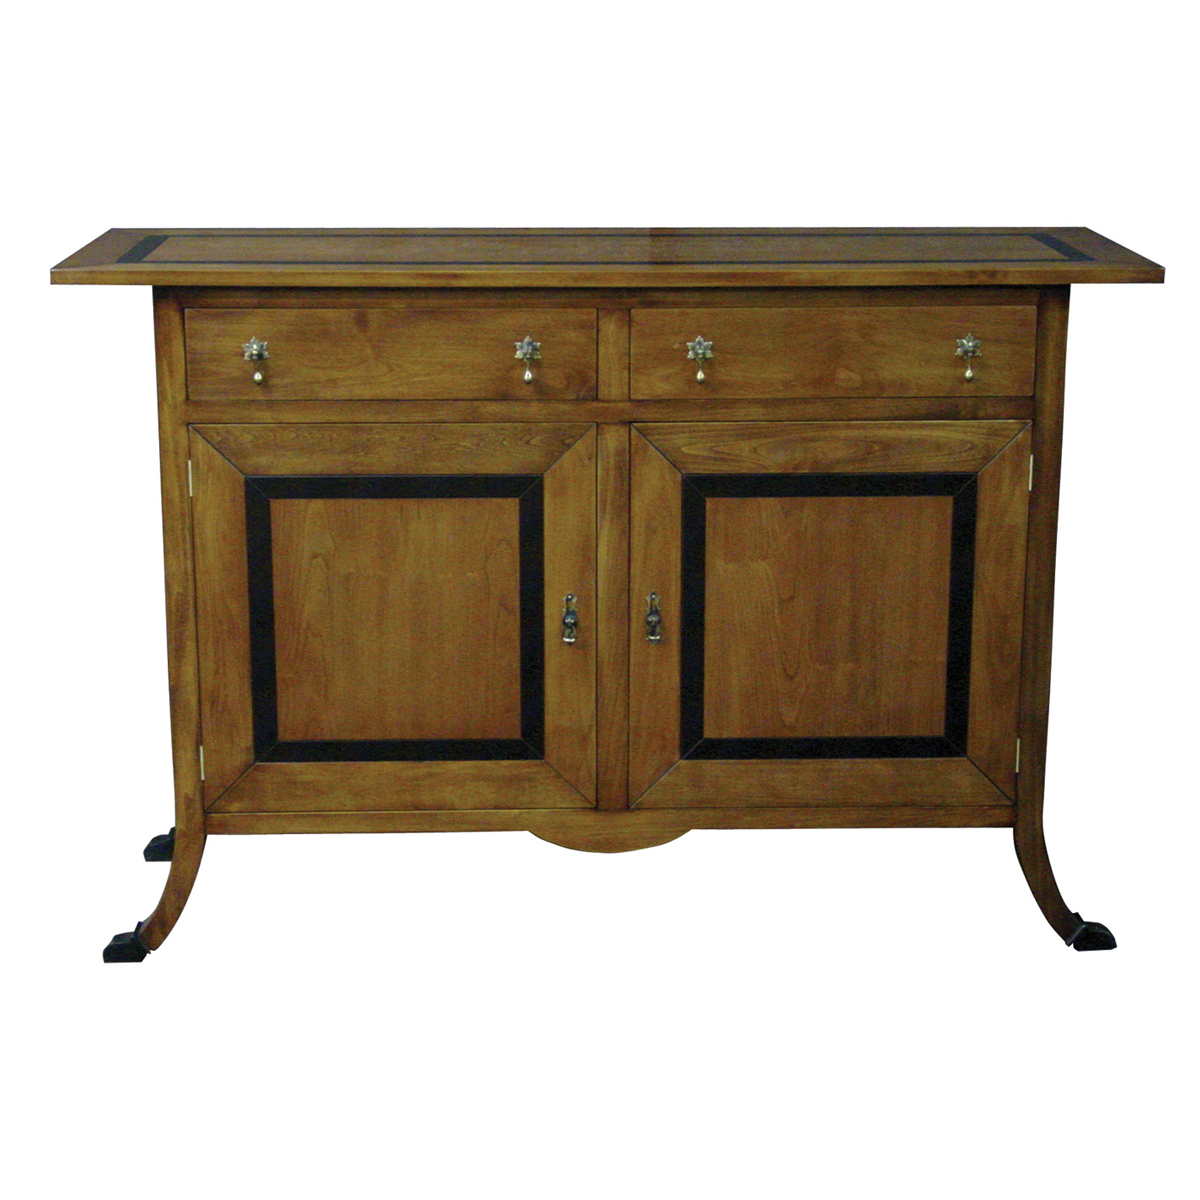 Hampstead Collection sideboard